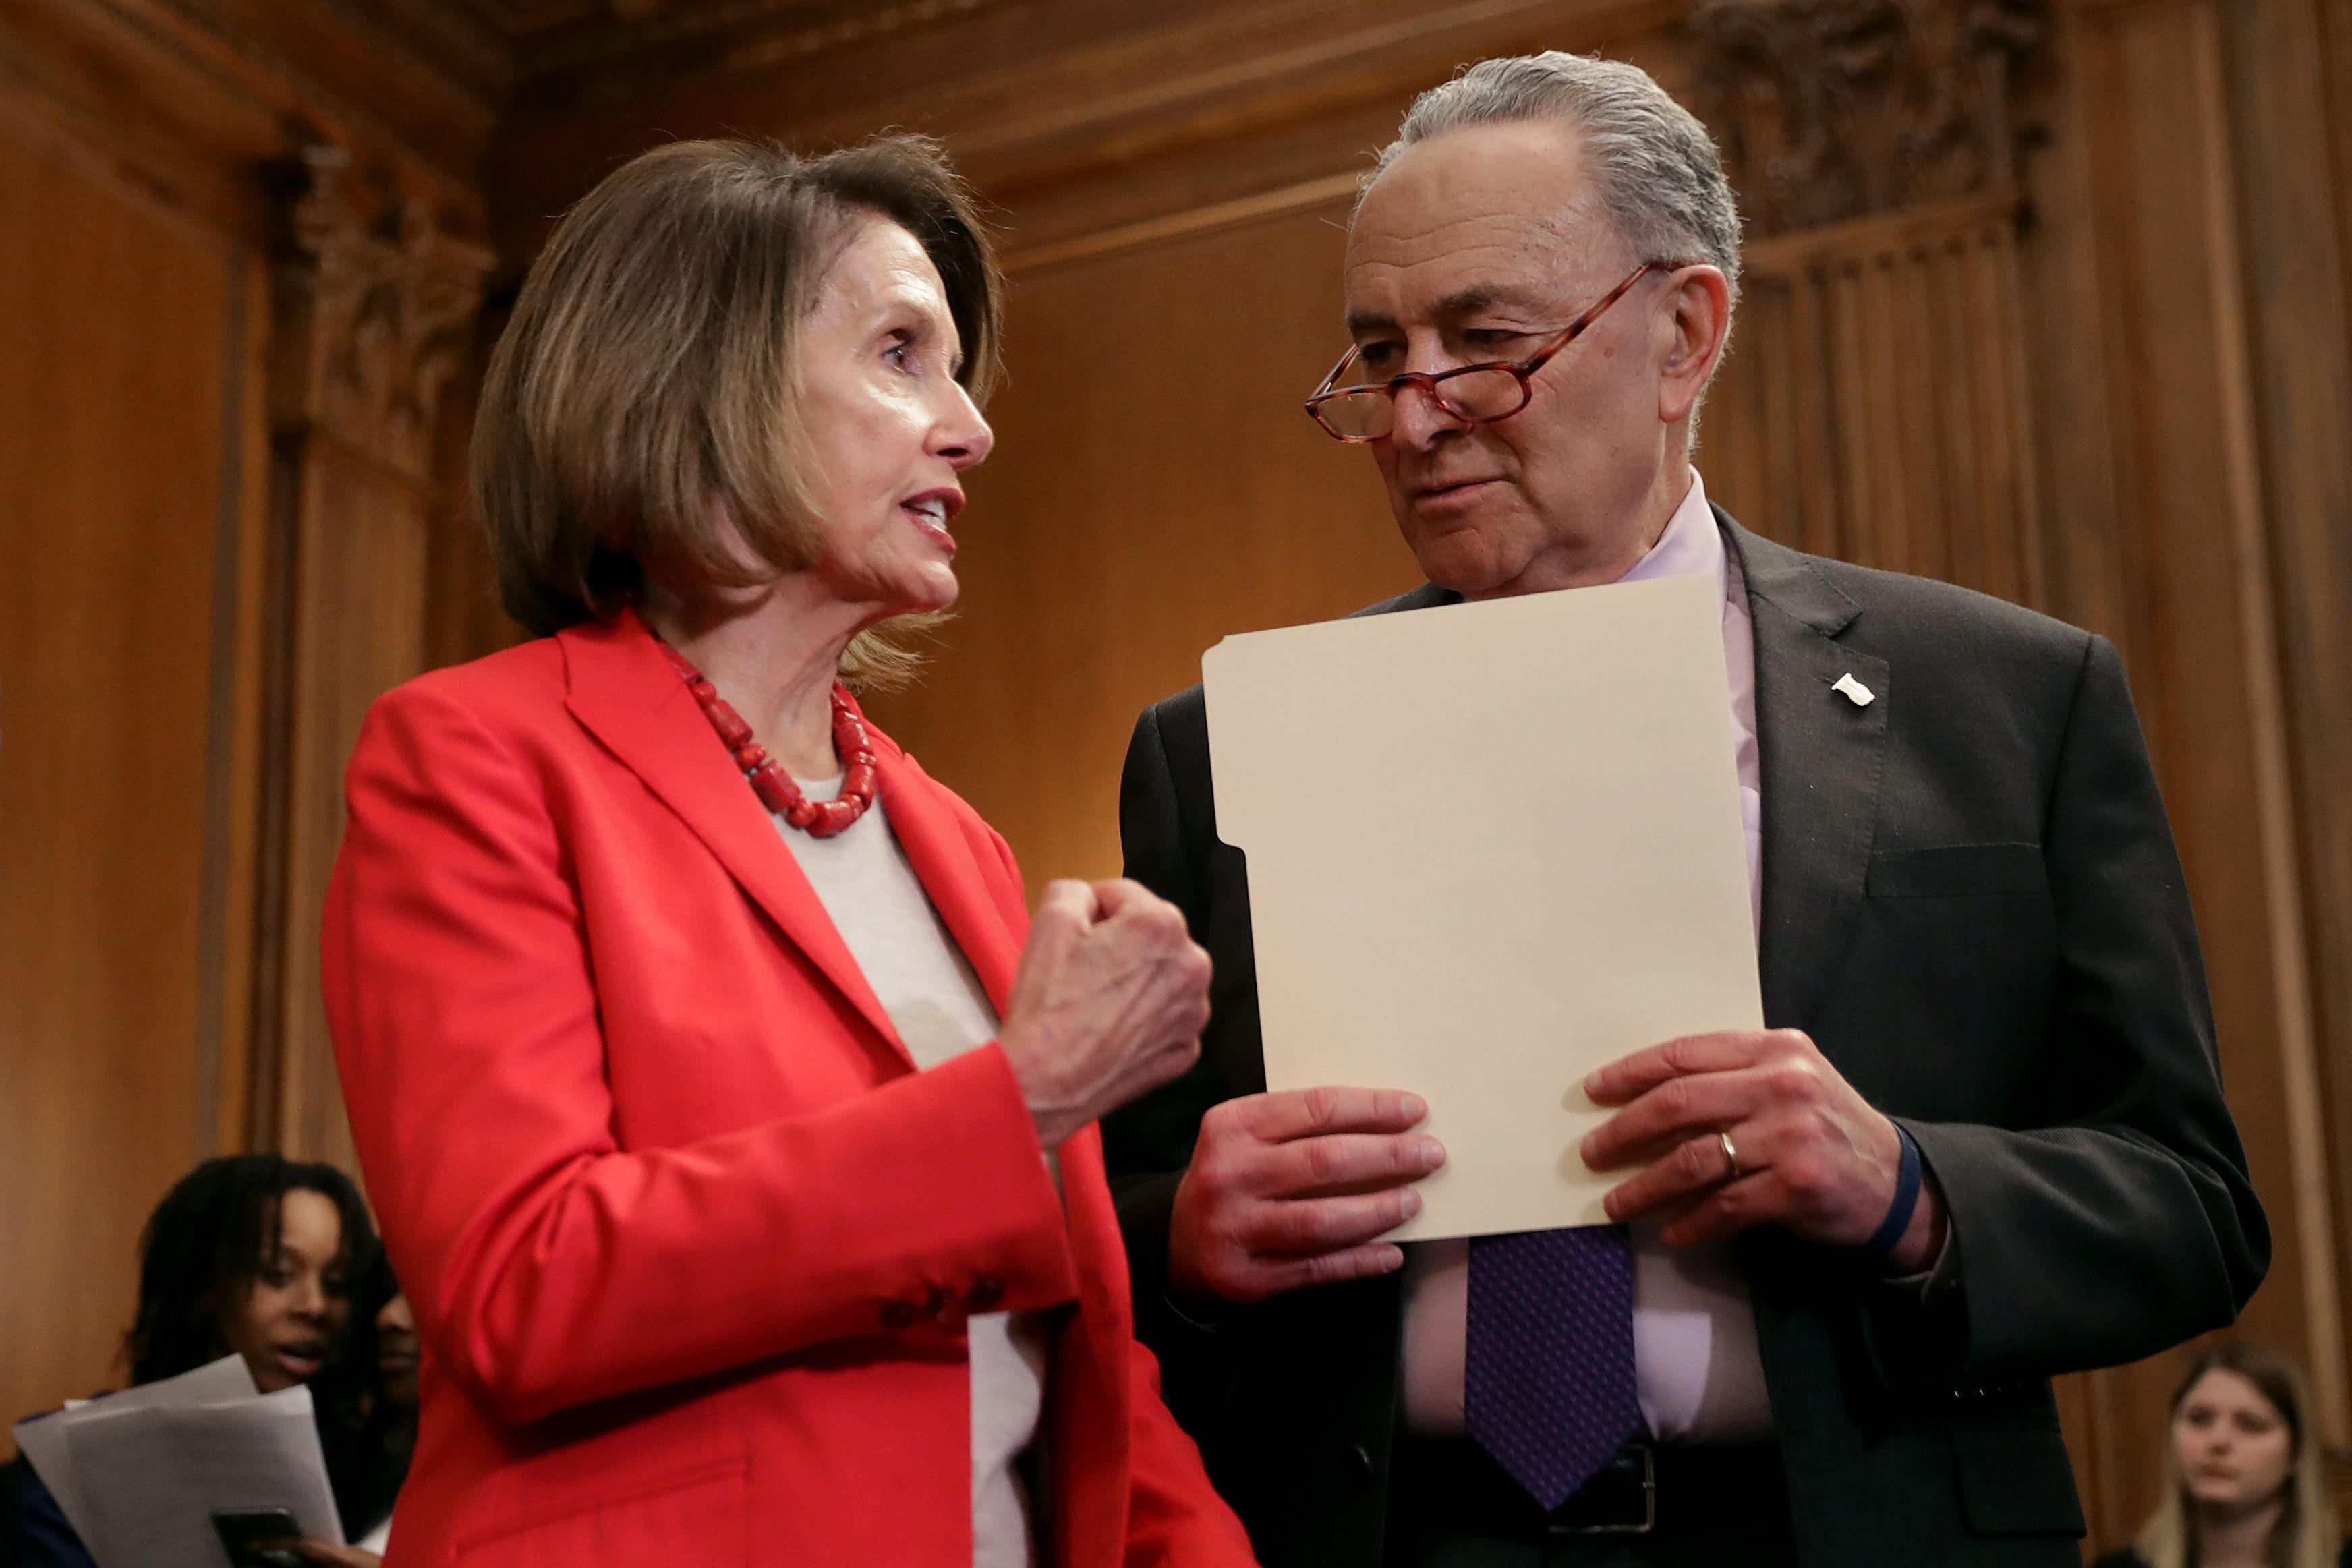 Speaker Nancy Pelosi and Senate Minority Leader Chuck Schumer introduce the Raise The Wage Act at the U.S. Capitol on Jan. 16